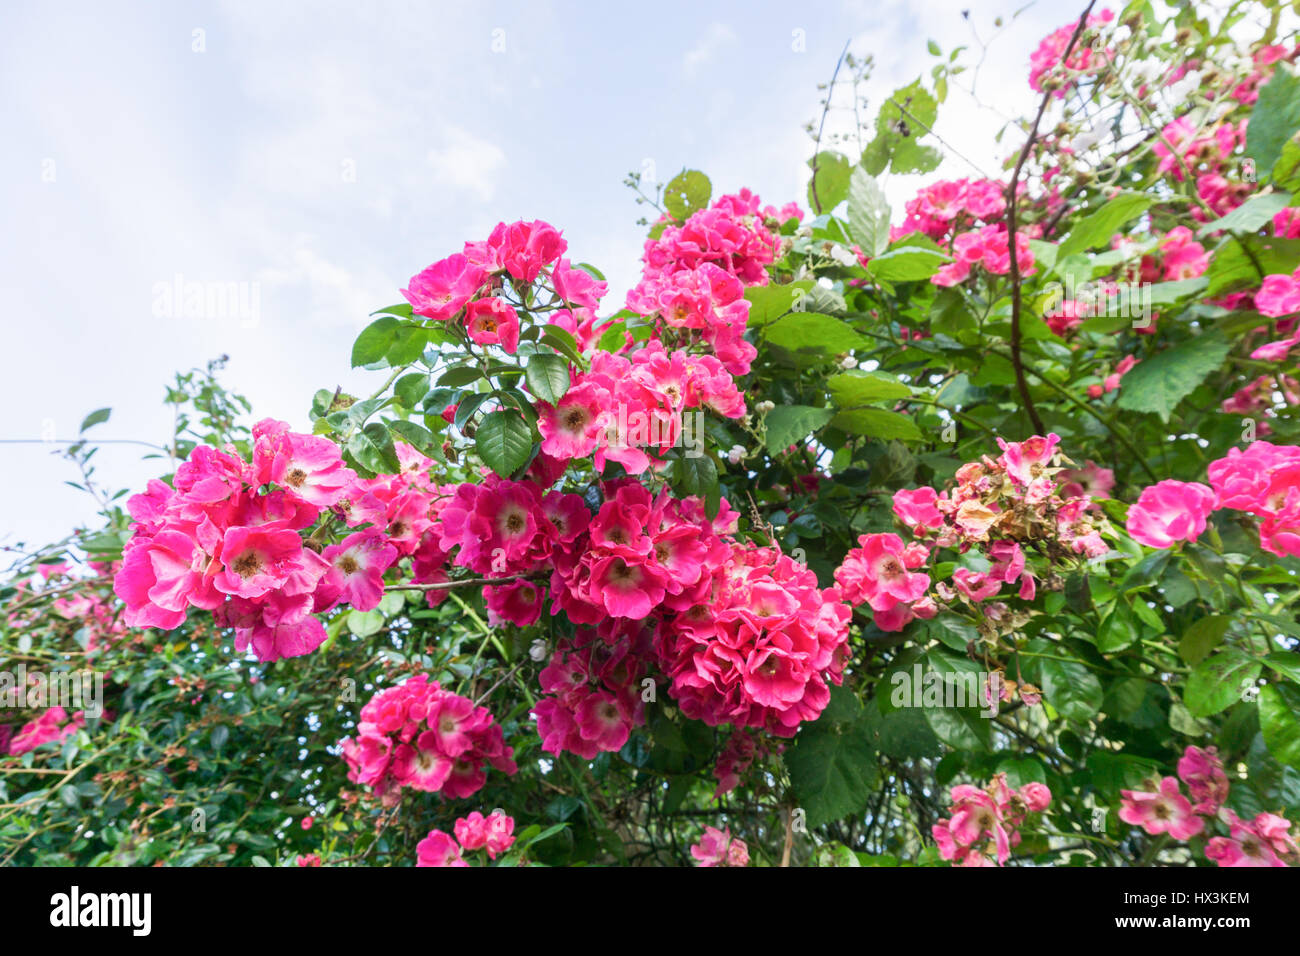 Pink Flowers On A Bush Stock Photos Pink Flowers On A Bush Stock